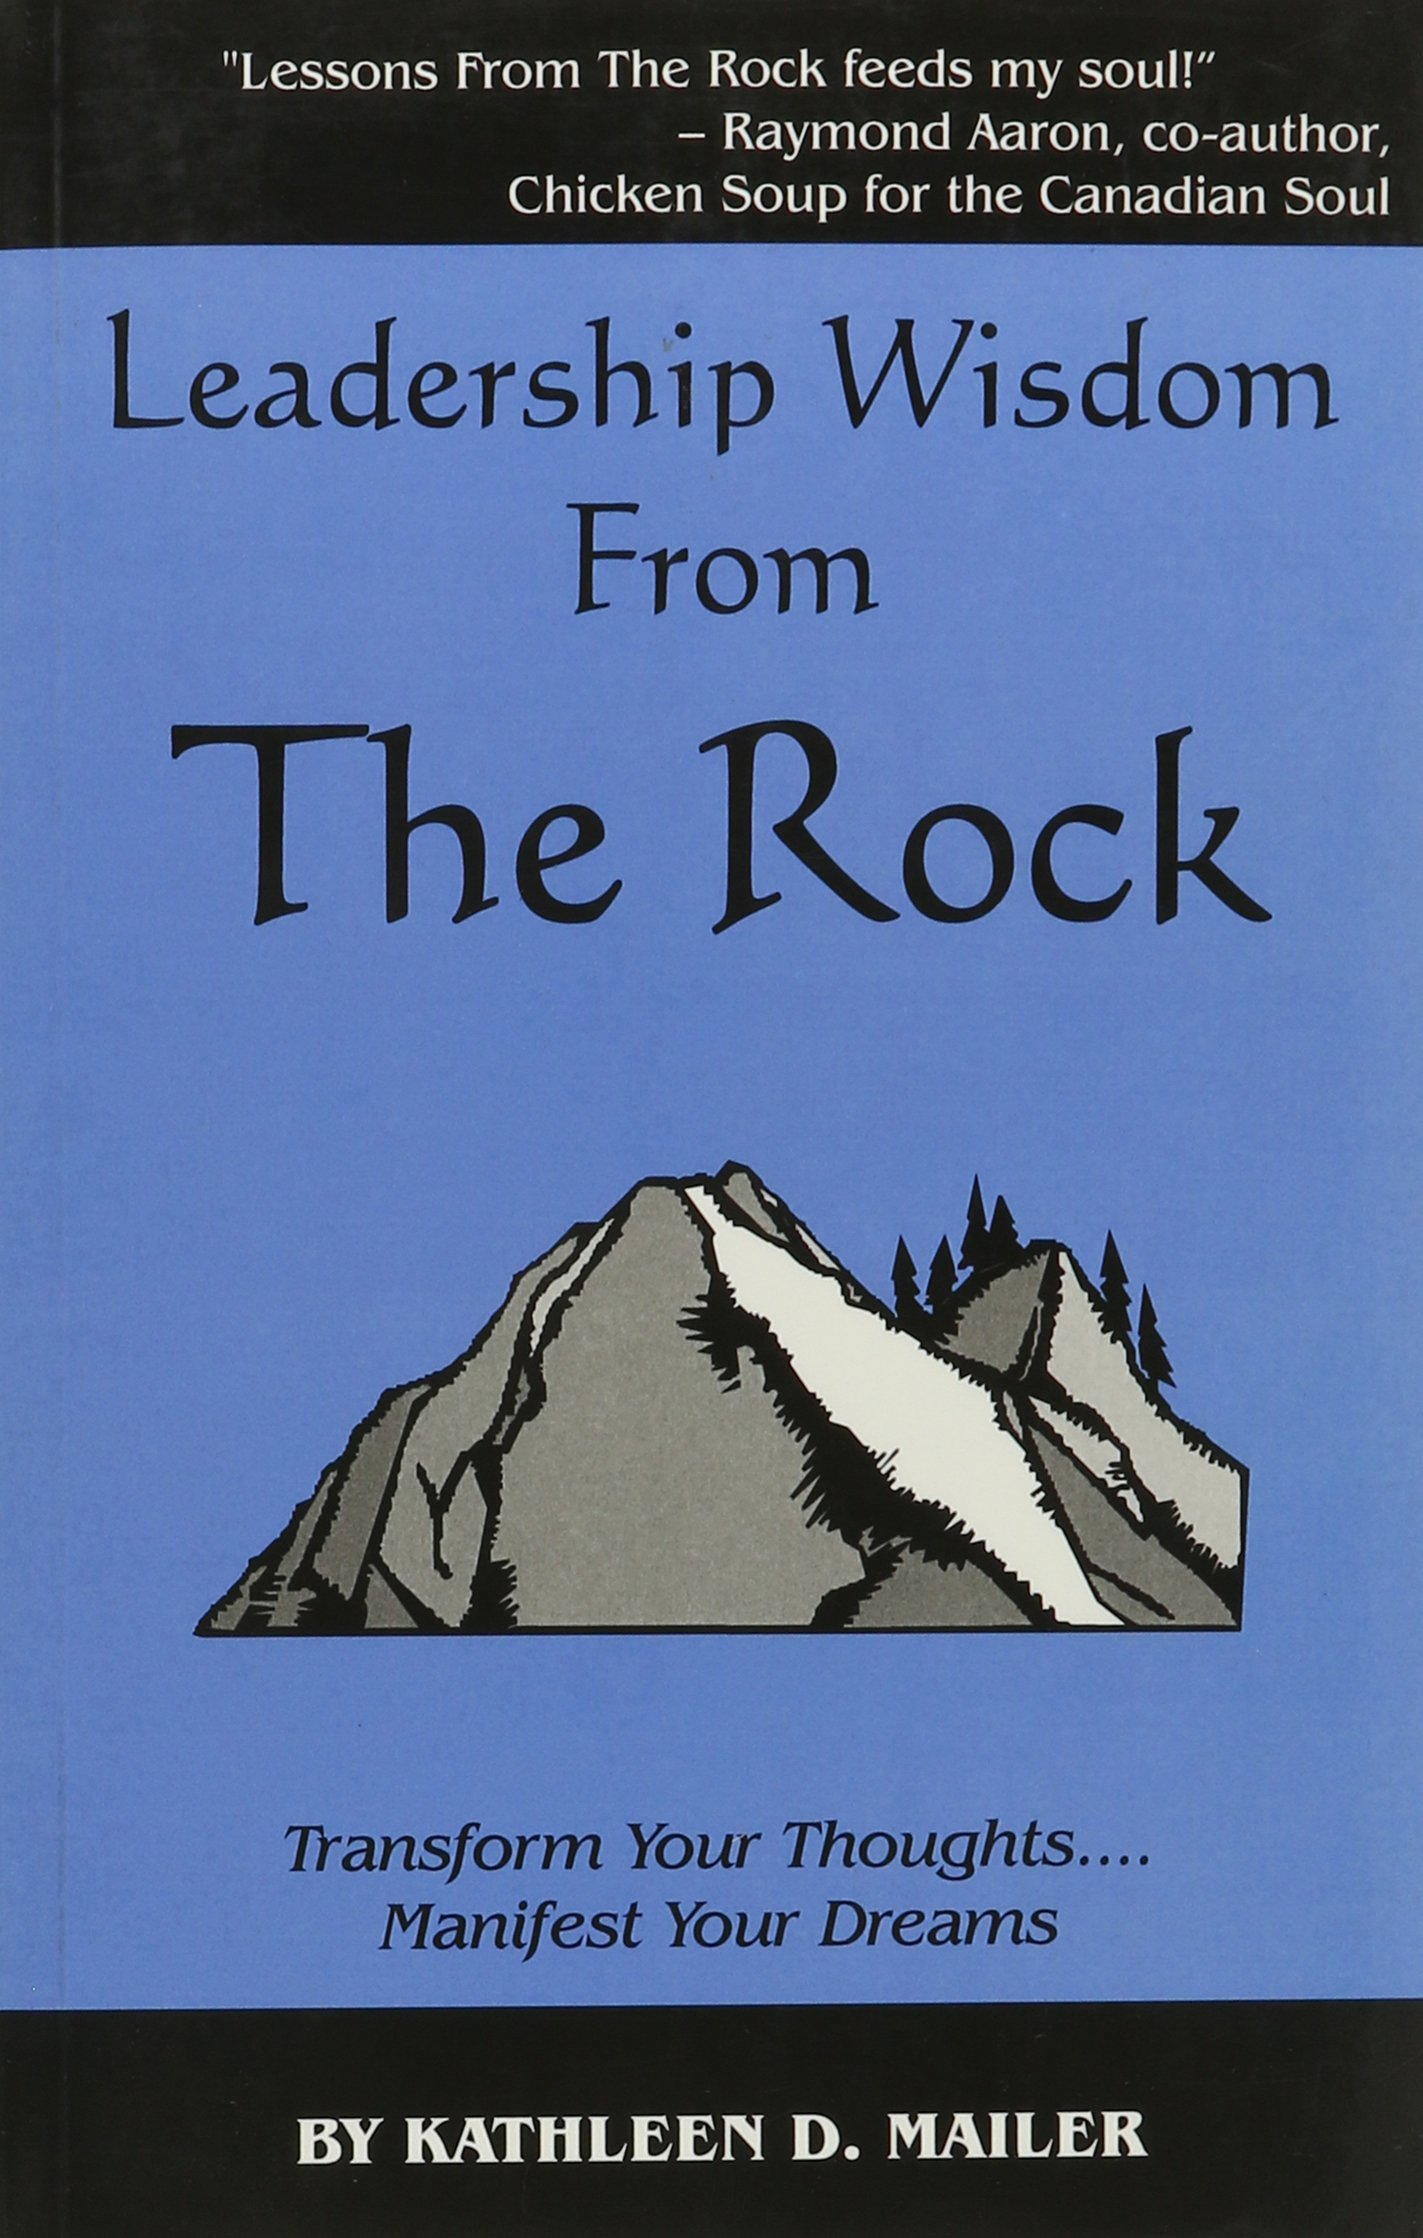 Leadership Wisdom From The Rock Kathleen D Mailer 9781894326452 Amazon Books